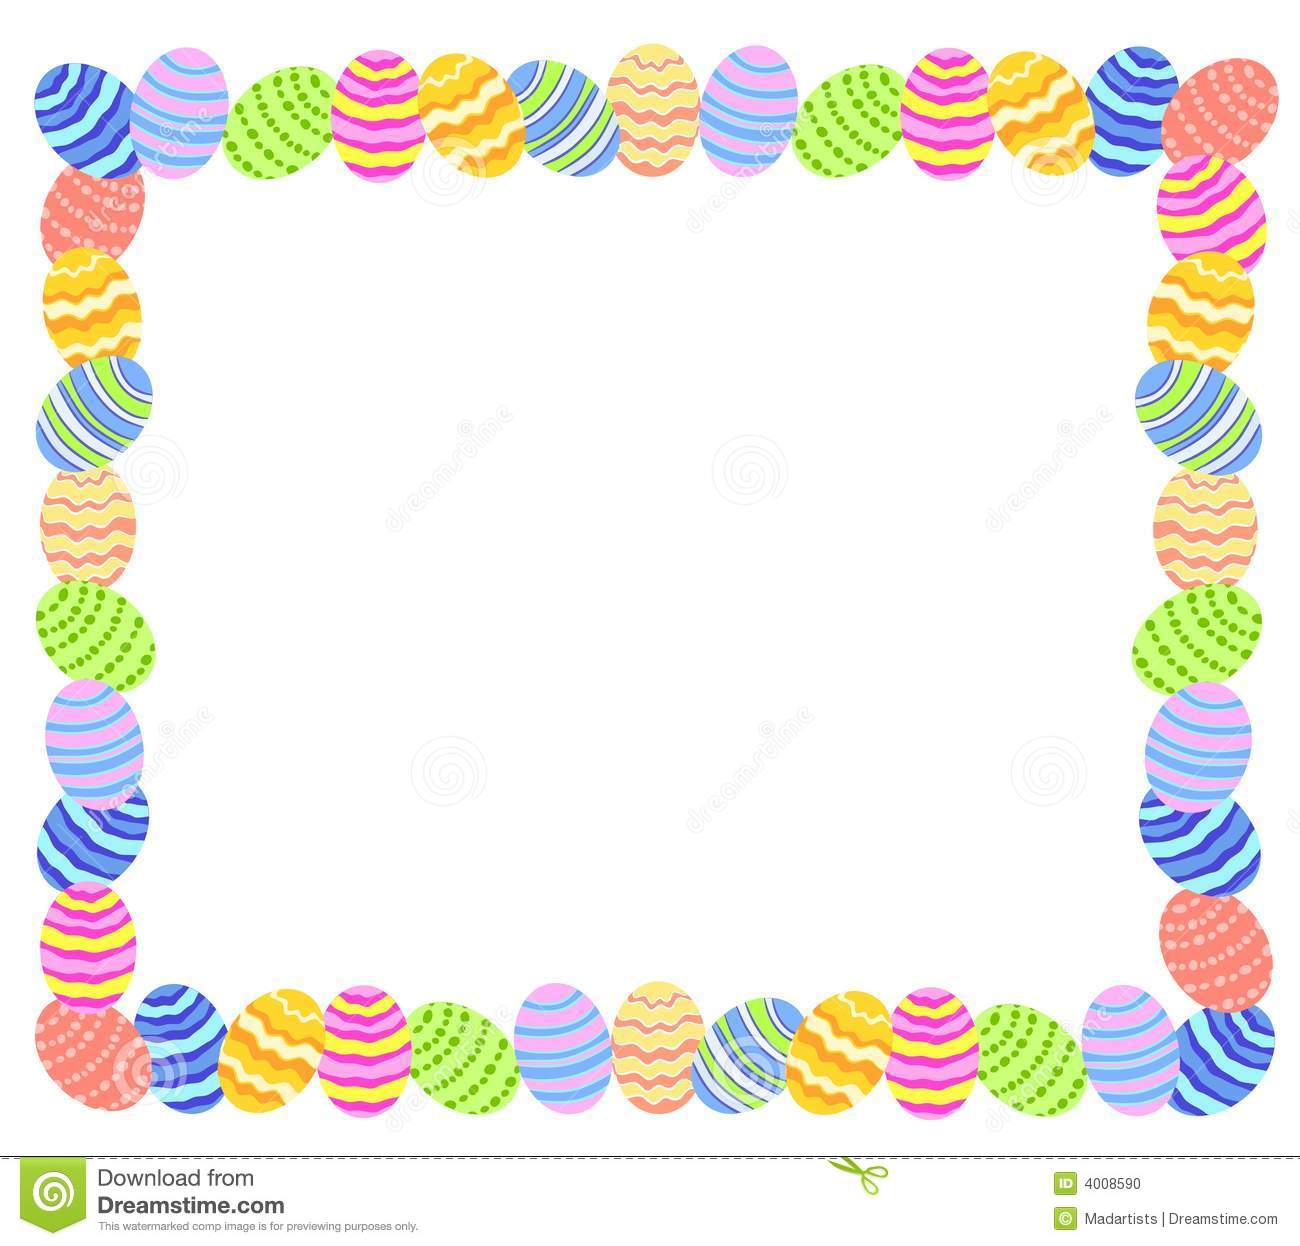 Easter clipart frames clip art freeuse library Easter Frame Clip Art – HD Easter Images clip art freeuse library